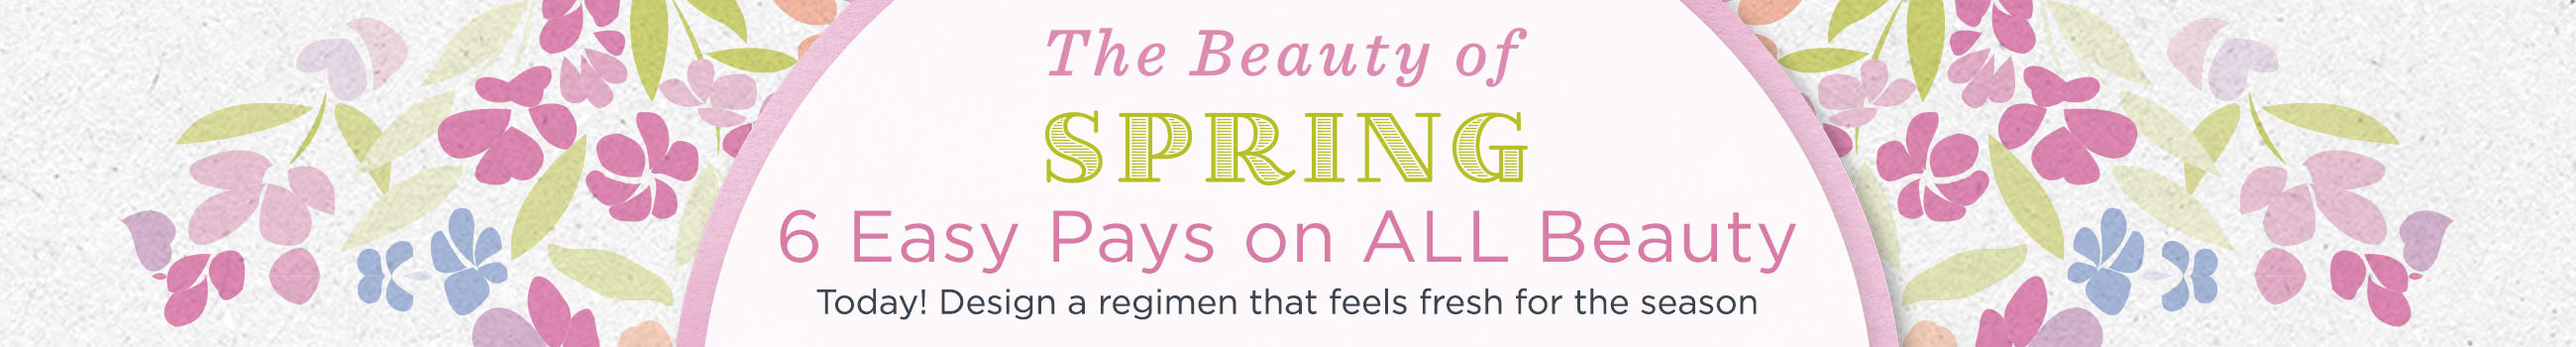 The Beauty of Spring — 6 Easy Pays on ALL Beauty — Today! Design a regimen that feels fresh for the season